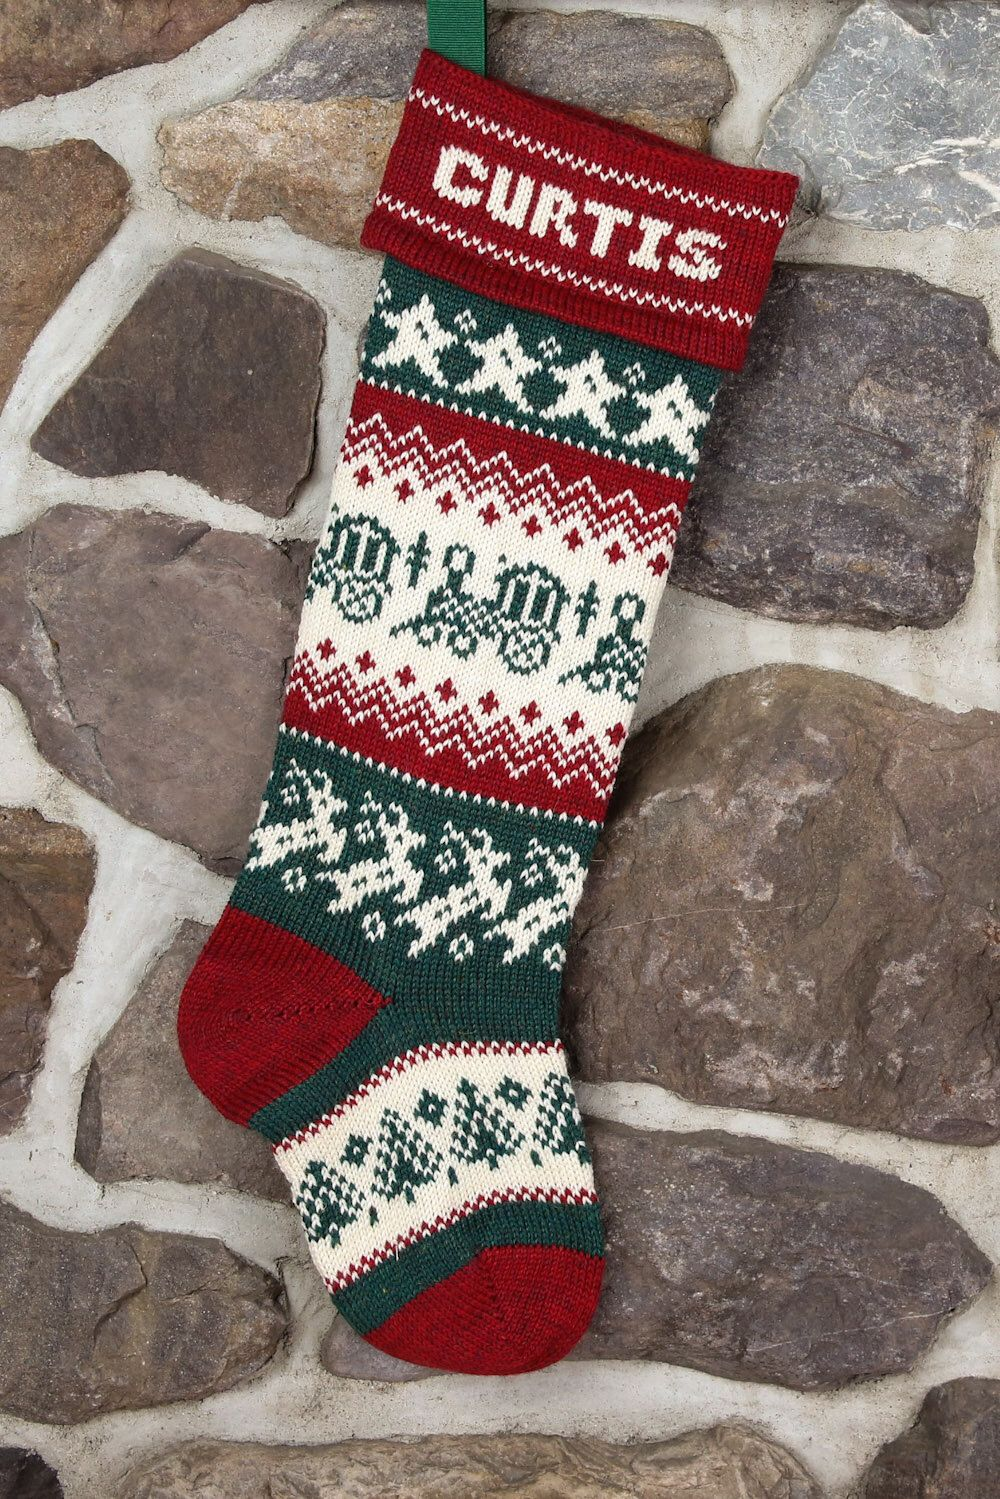 Personalized Christmas Stocking with a train by TerrapinKnits on Etsy https://www.etsy.com/listing/199973399/personalized-christmas-stocking-with-a